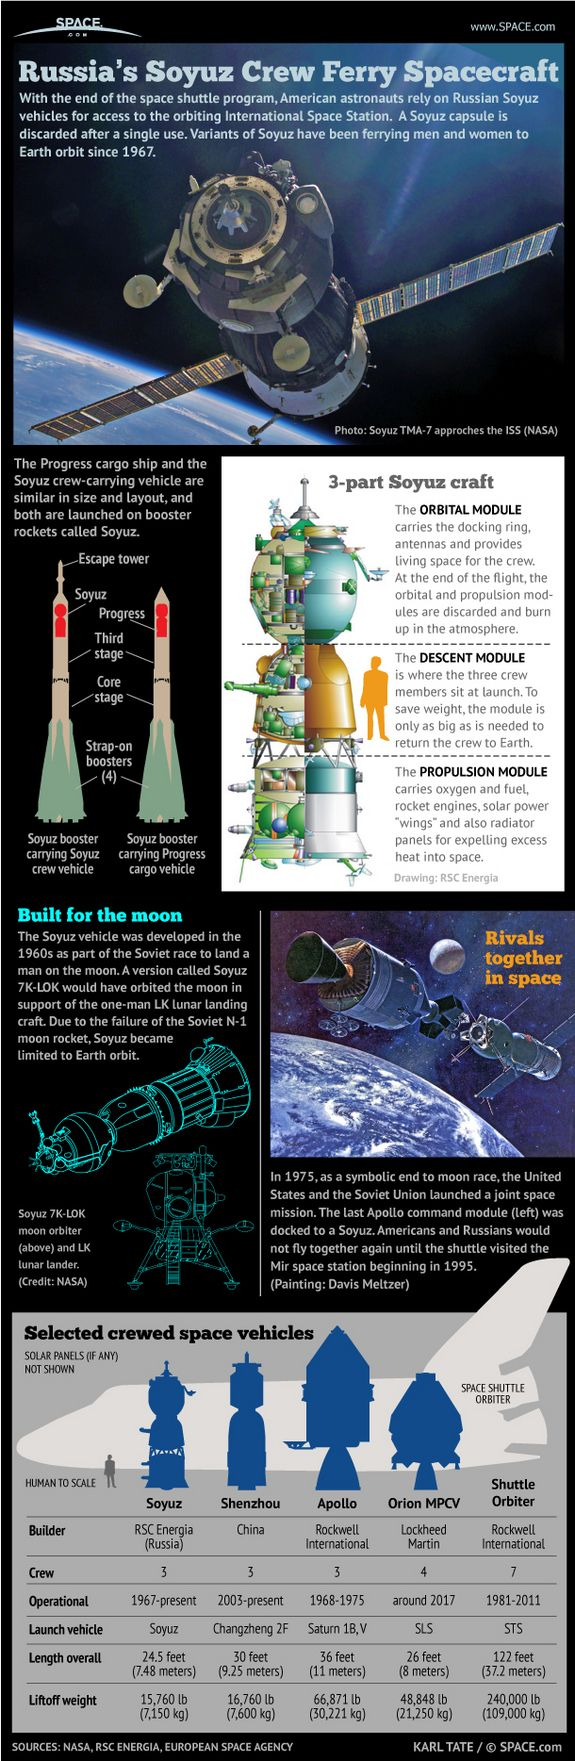 Russia's Manned Soyuz Space Capsule Explained (Infographic)  by Karl Tate, SPACE.com Infographics Artist,  Russia's workhorse Soyuz spacecraft have been flying for nearly 45 years, ferrying first cosmonauts into orbit, then branching out to launch NASA astronauts and spaceflyers from many countries on trips to the International Space Station.